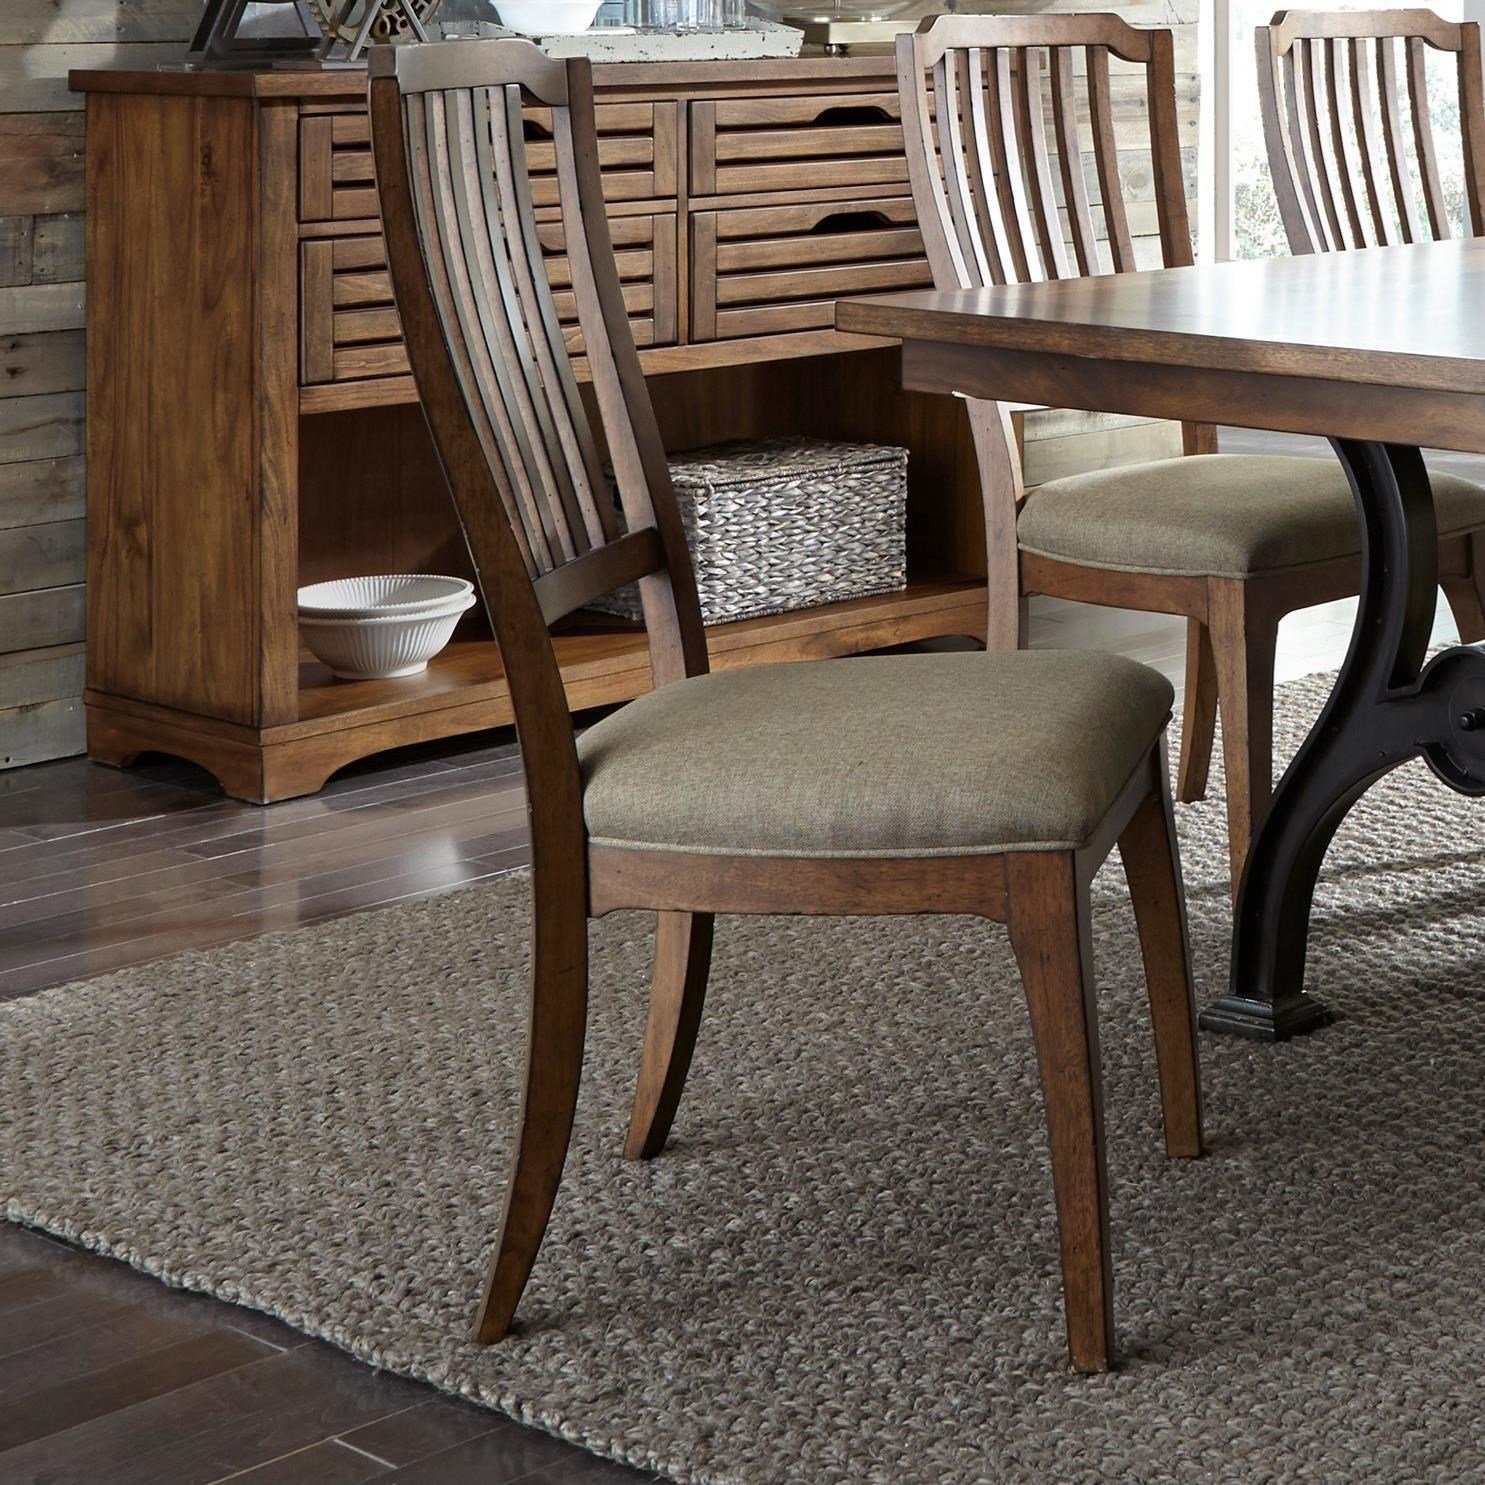 Best Furniture Store Arlington Tx Kula Furniture With Pictures